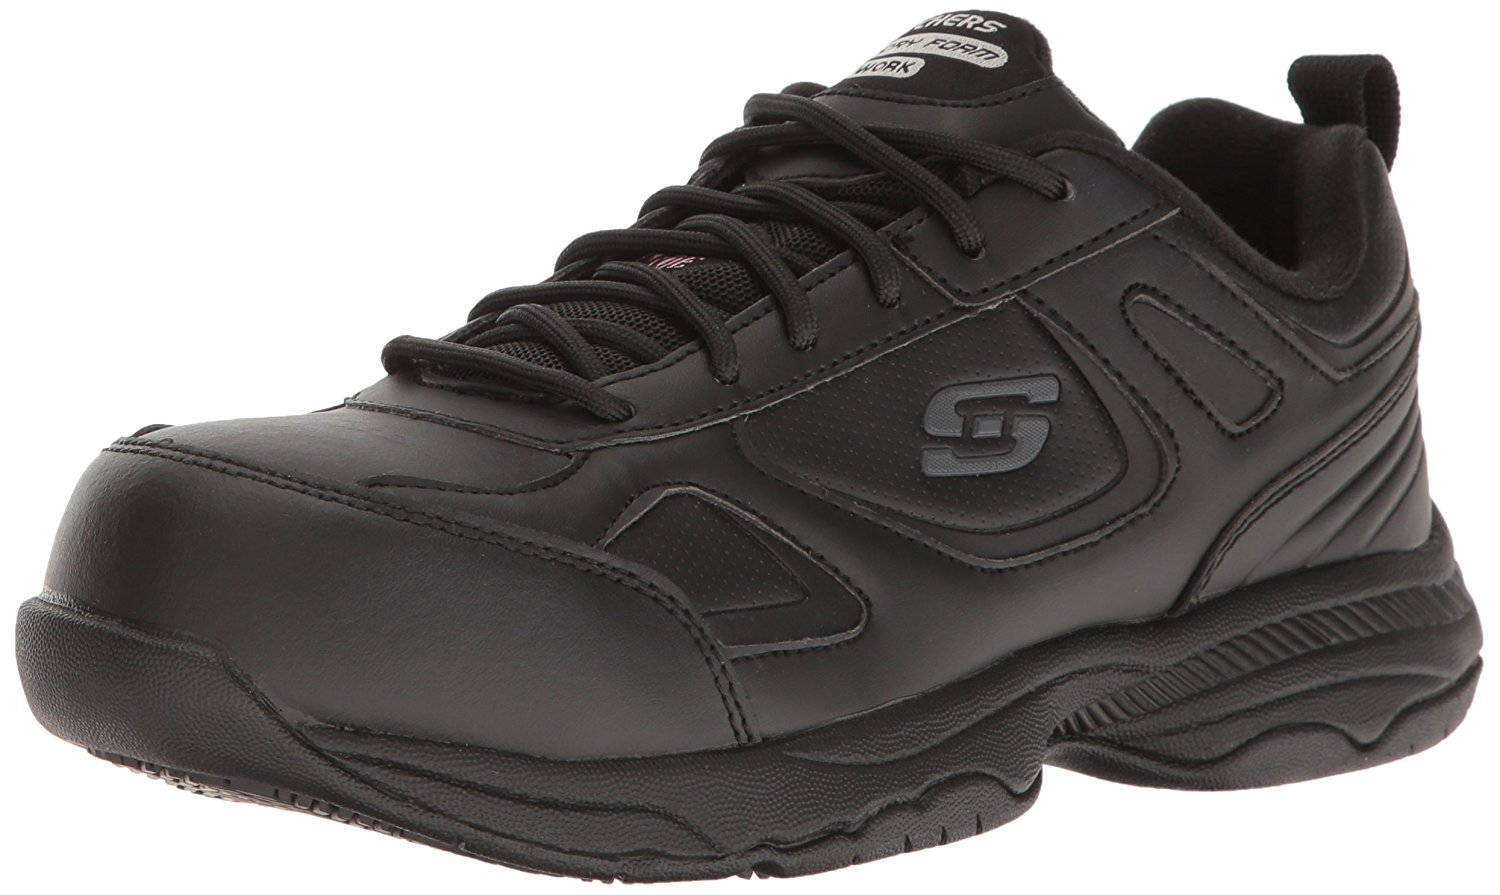 Comfortable Slip Resistant Work Shoes